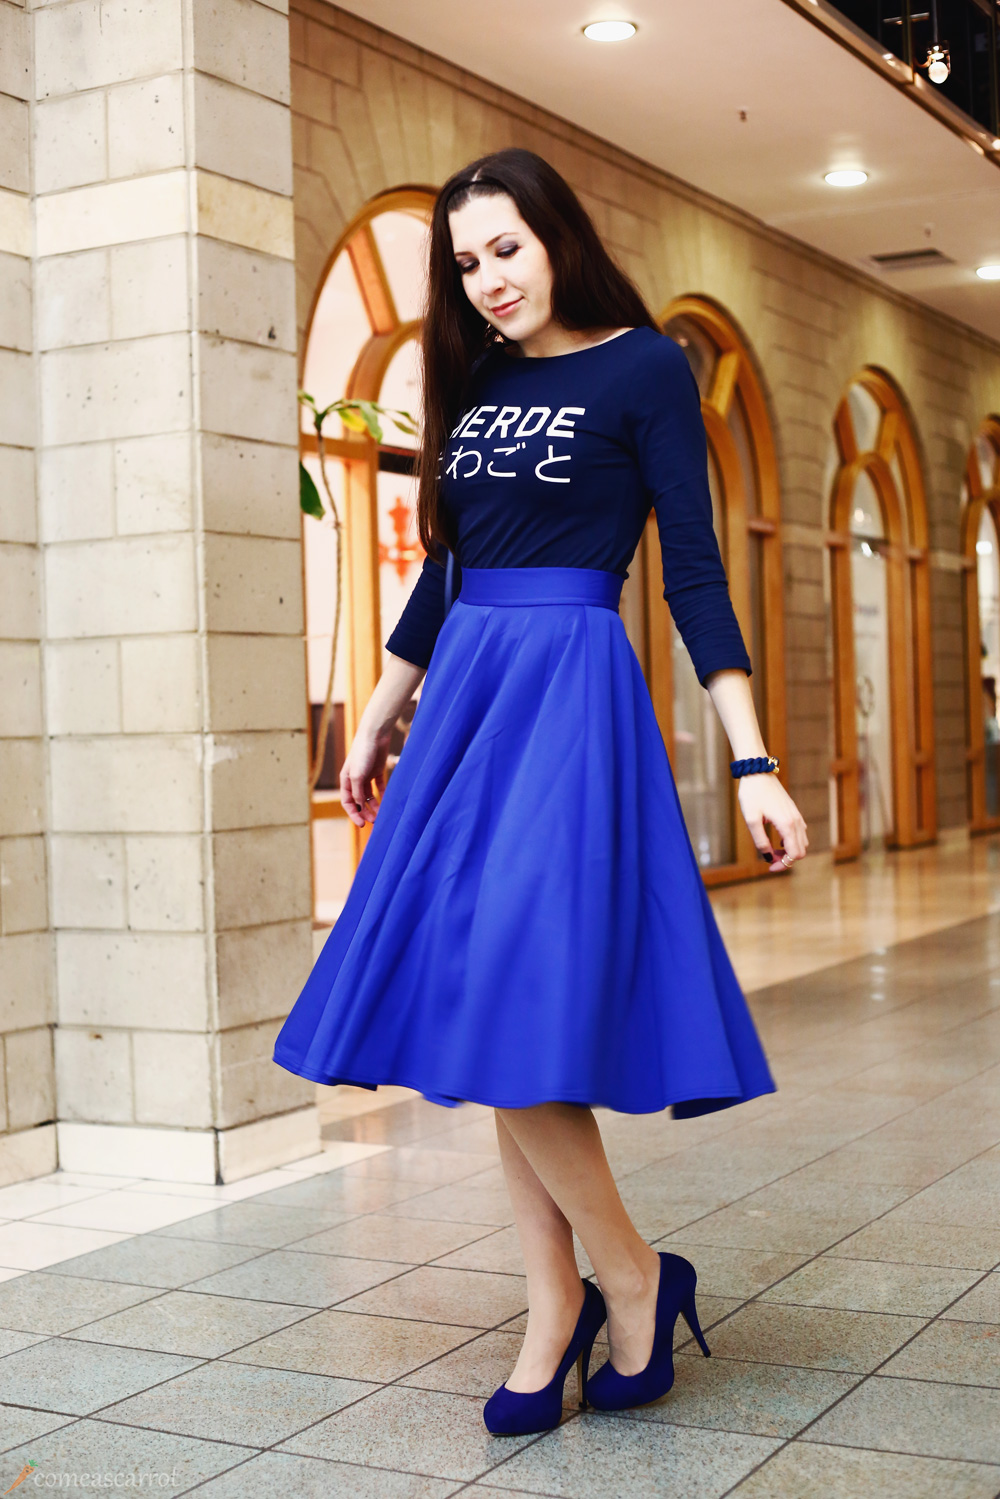 outfit, asos, midi, skirt, blue, benedetta bruzziches, lemon, bag, aldo, heels, mbfwb, lindengallerie, fashion week berlin, therubz